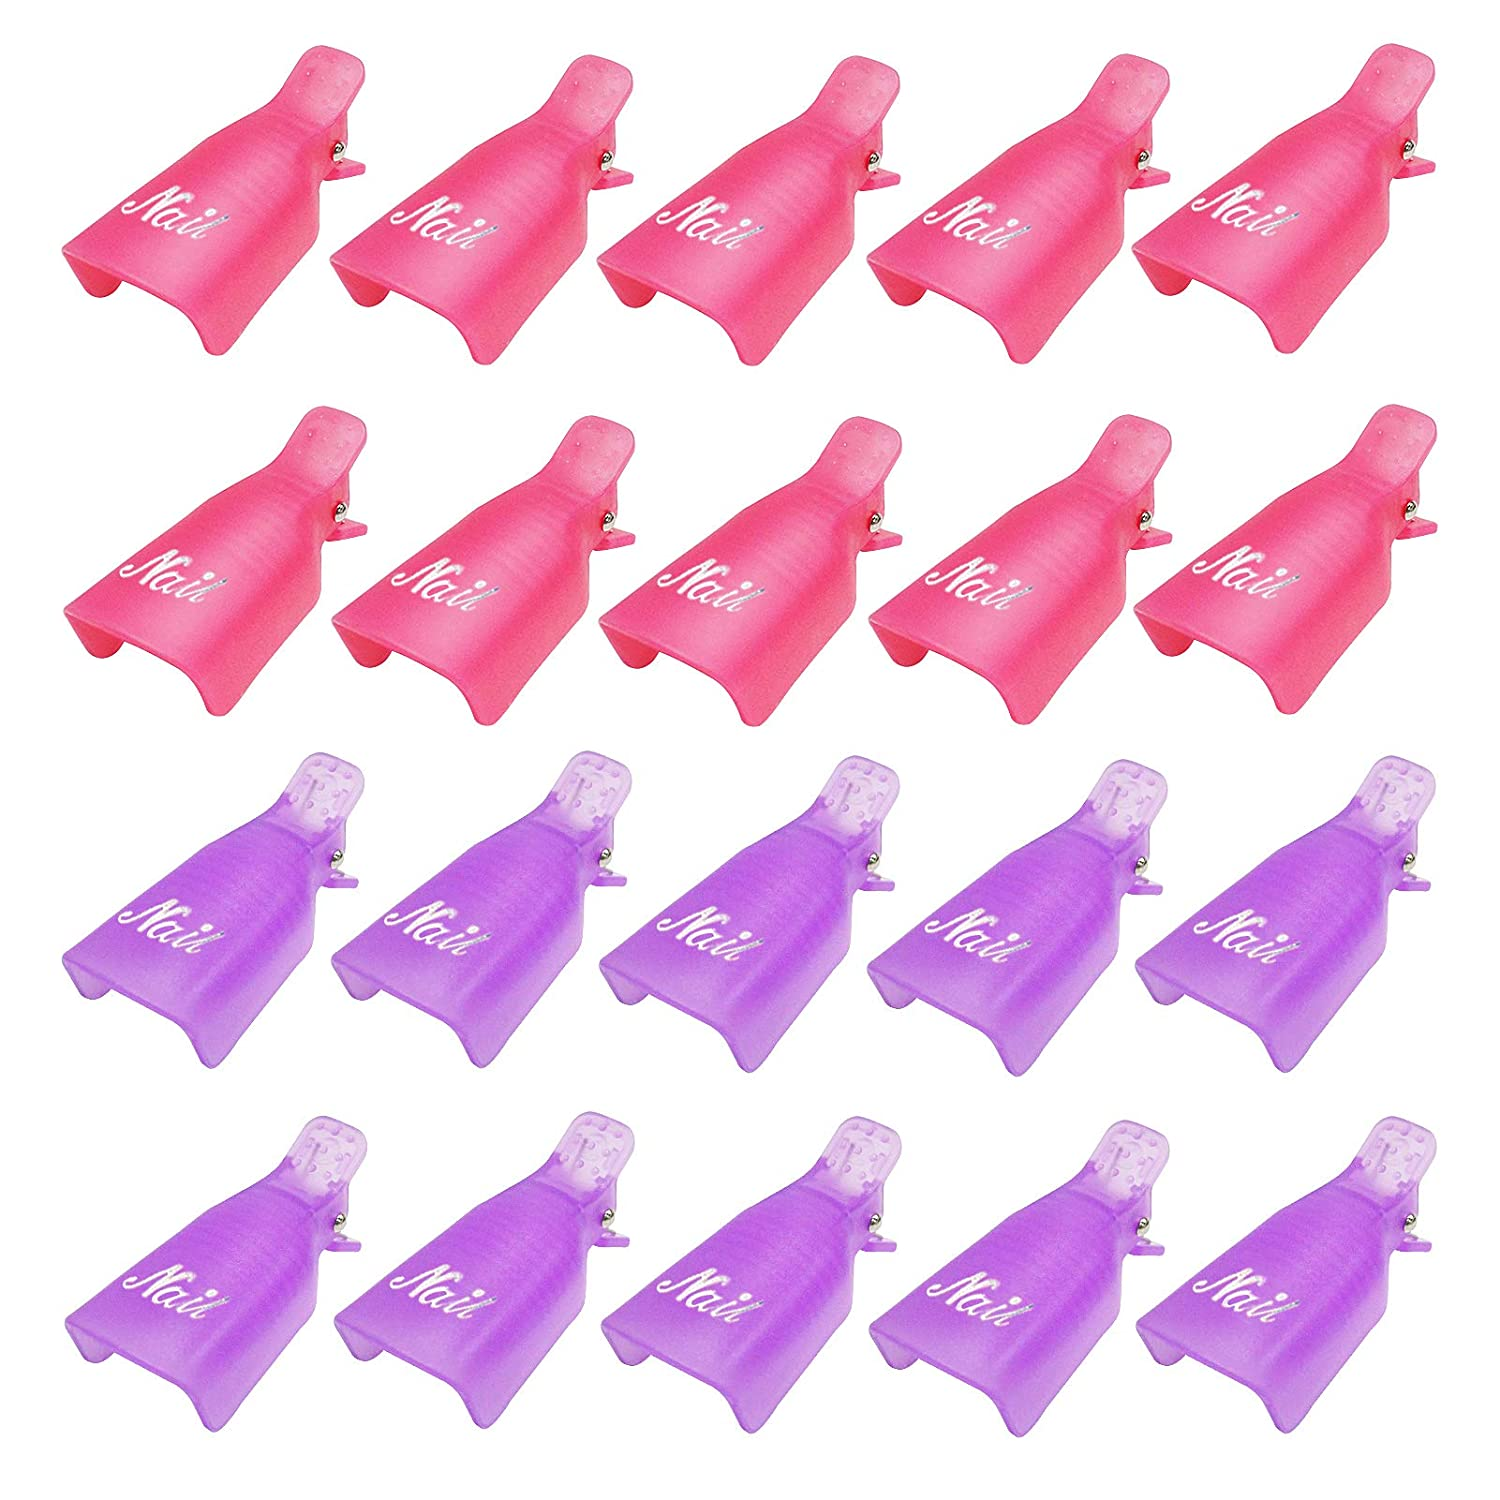 Nail Online limited product Polish Remover Max 85% OFF Clips 20 Finger Pack Reusable for